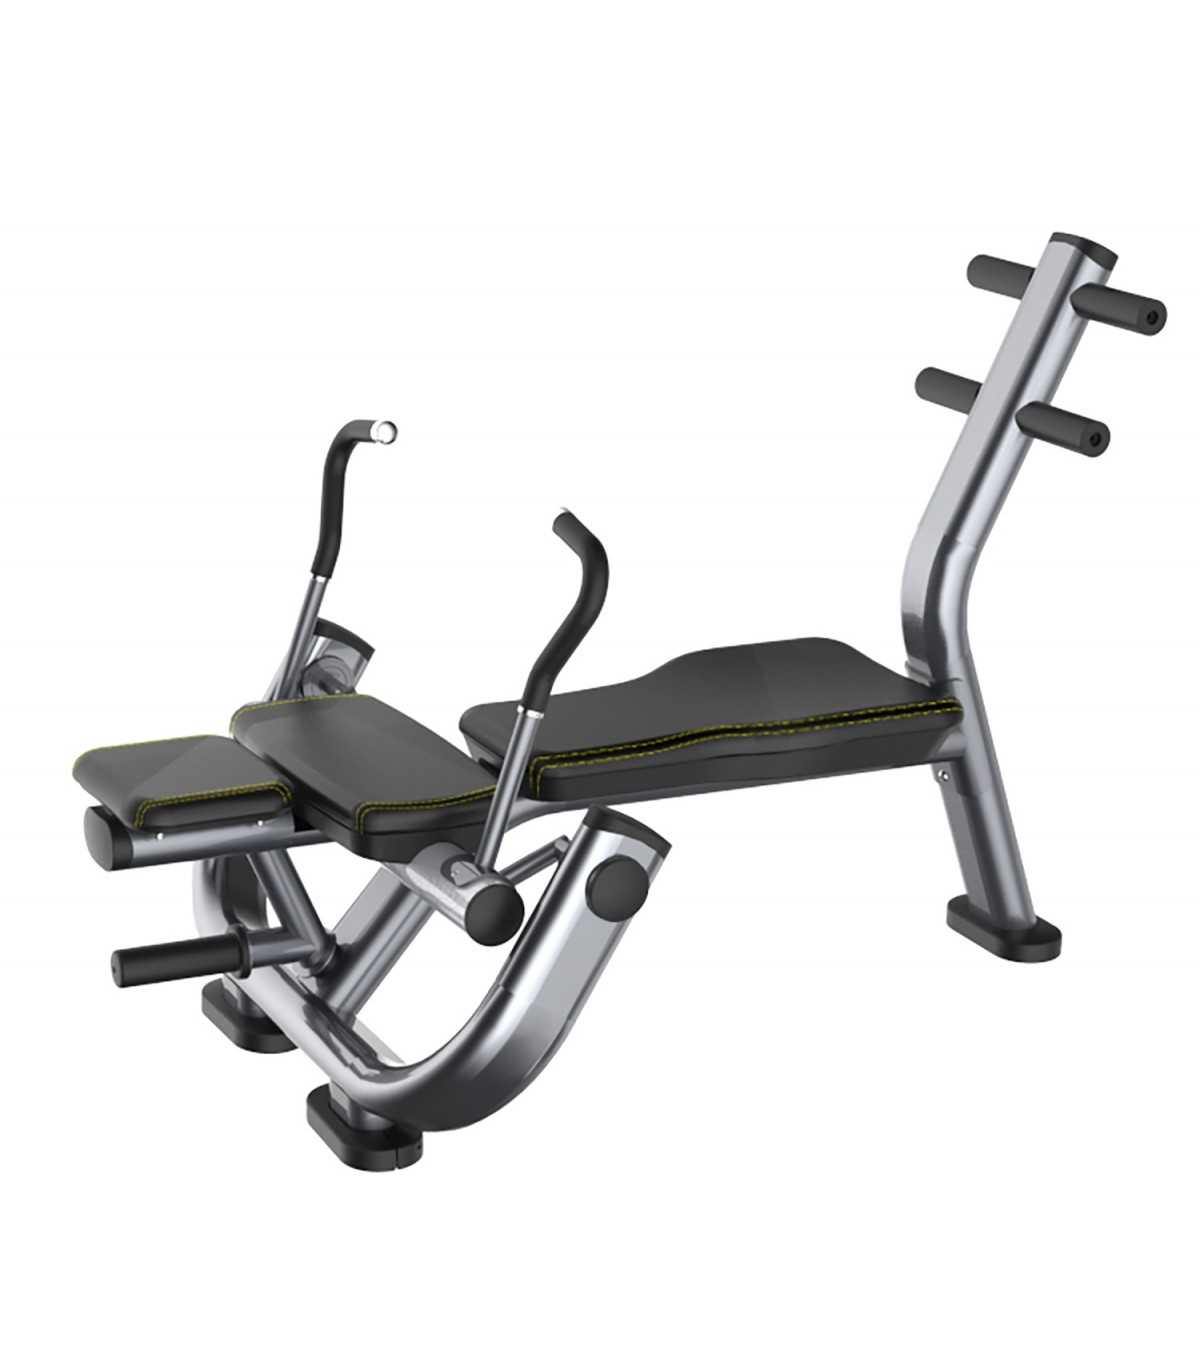 Banc De Musculation Professionnel Abdominaux Crunch Care Fitness